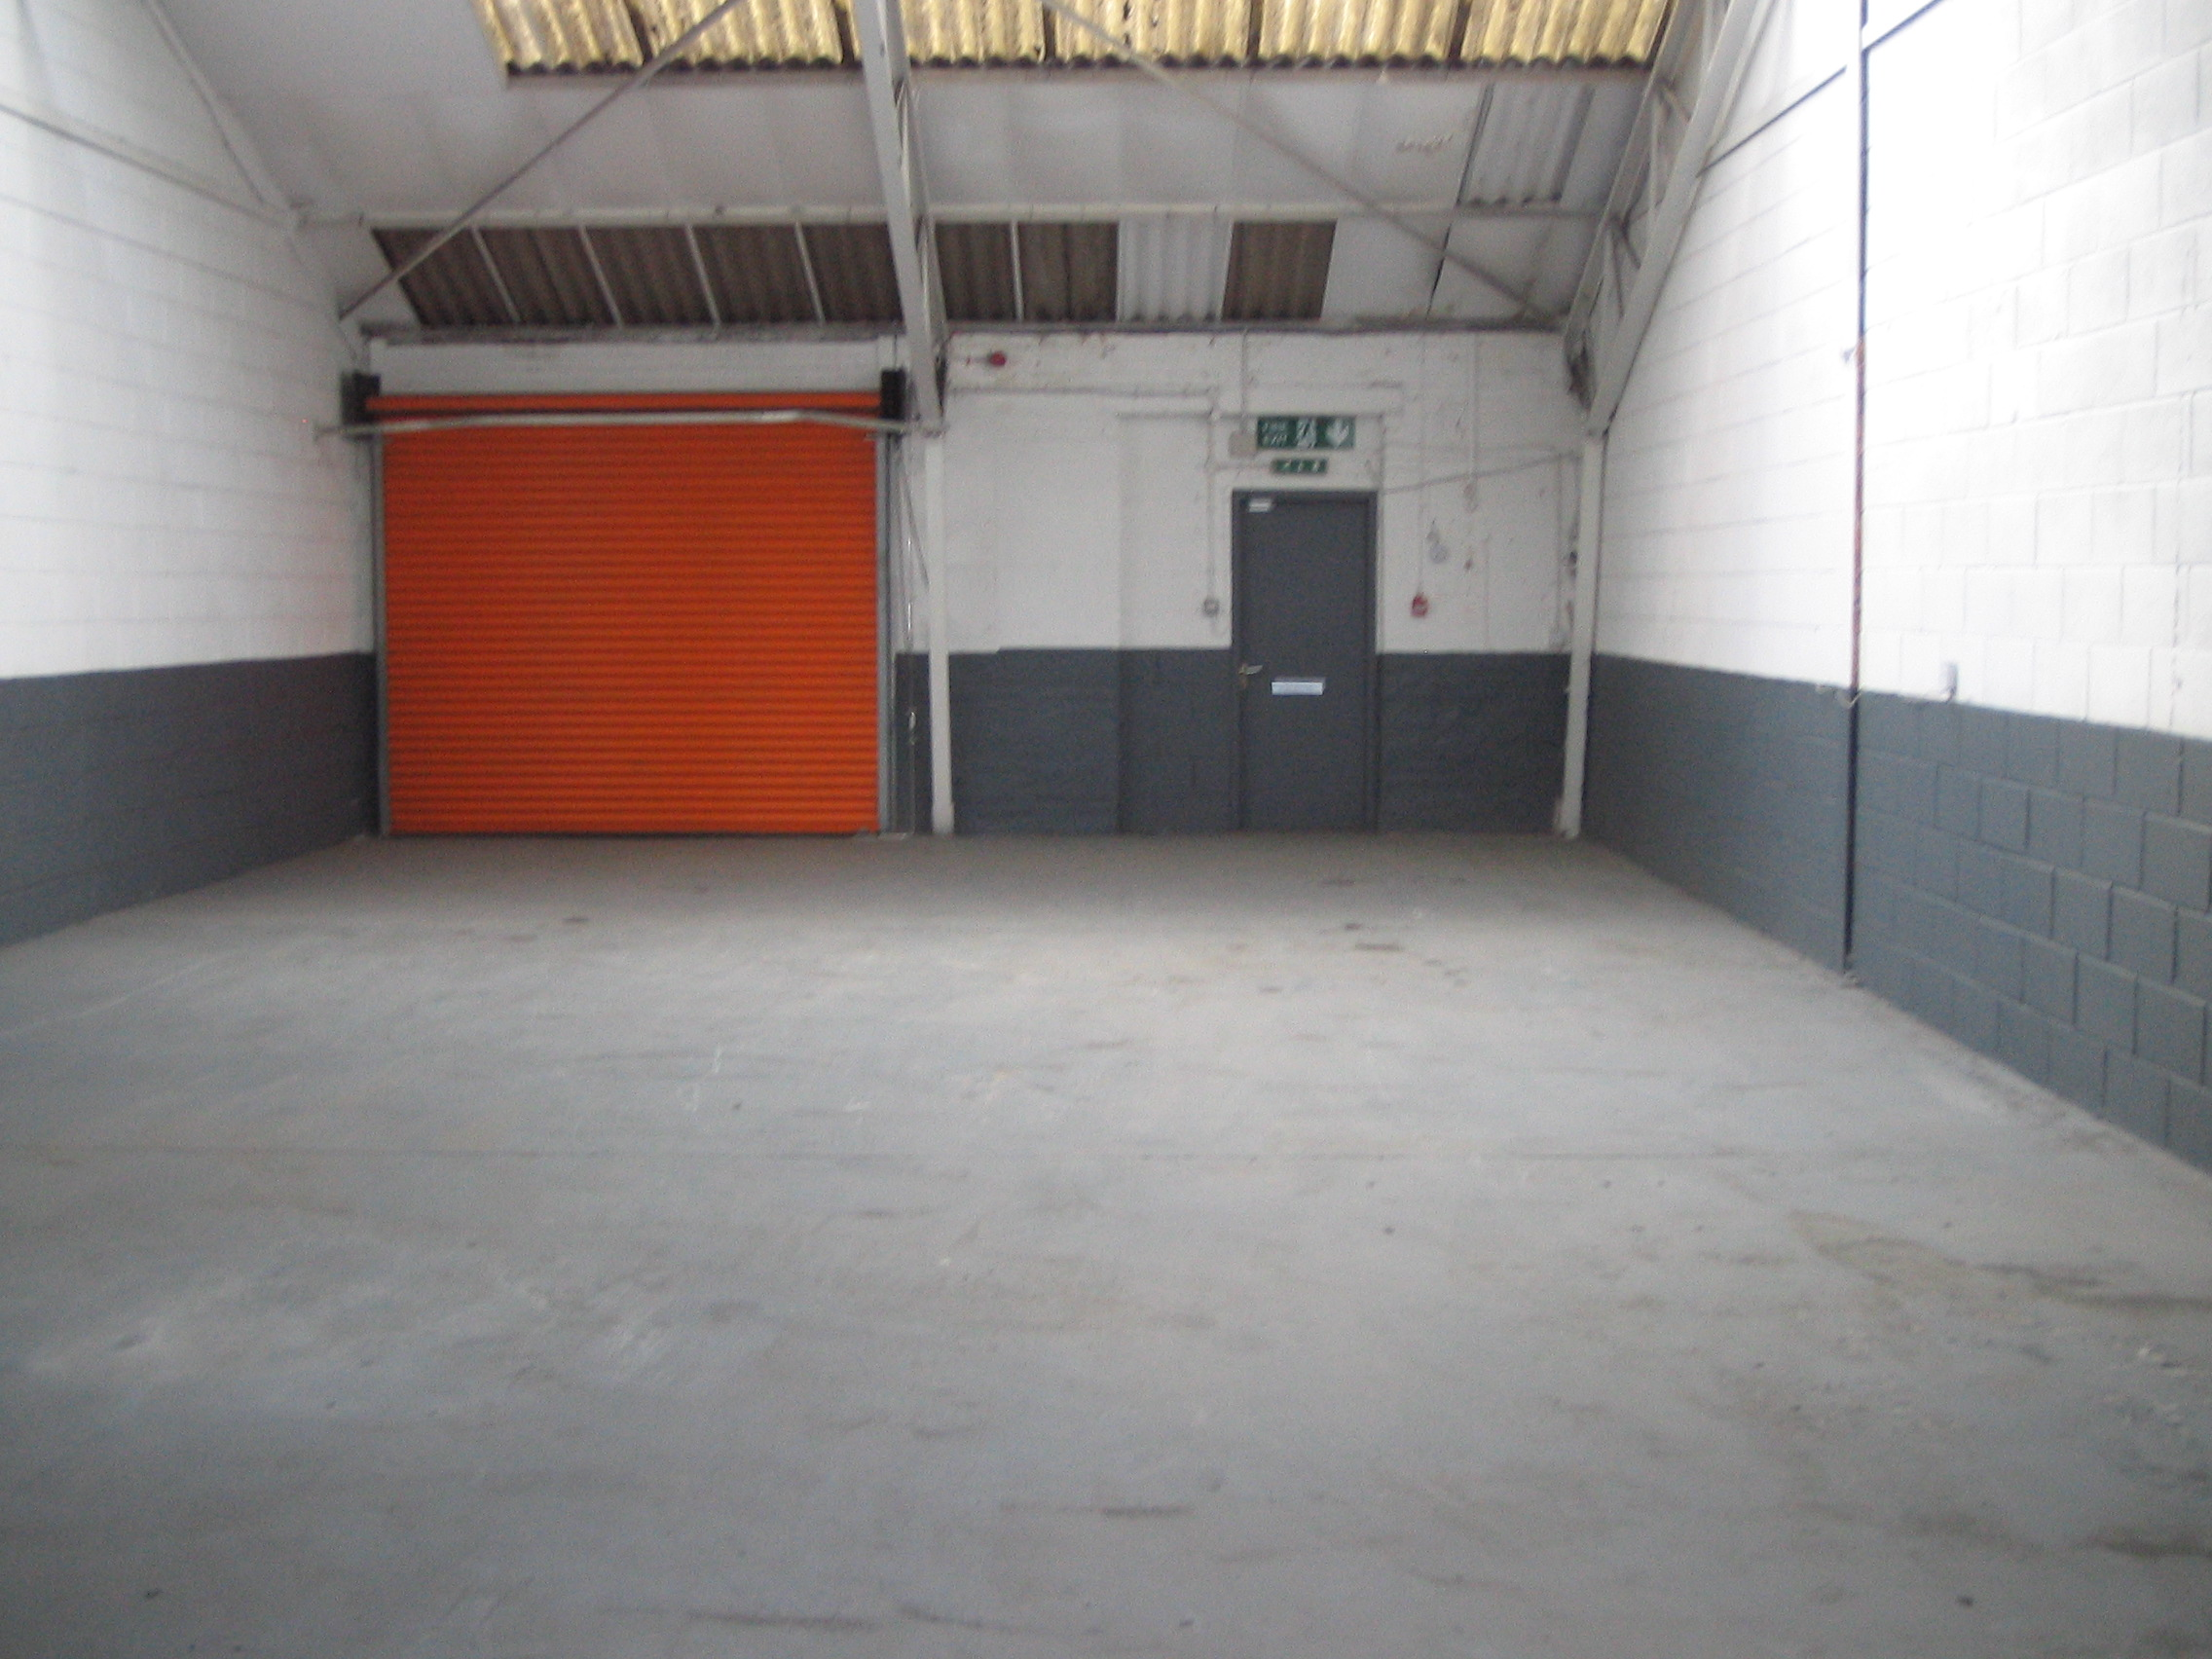 Industrial Units at Bizspace, Planetary Business Park, Willenhall, Wolverhampton, WV13